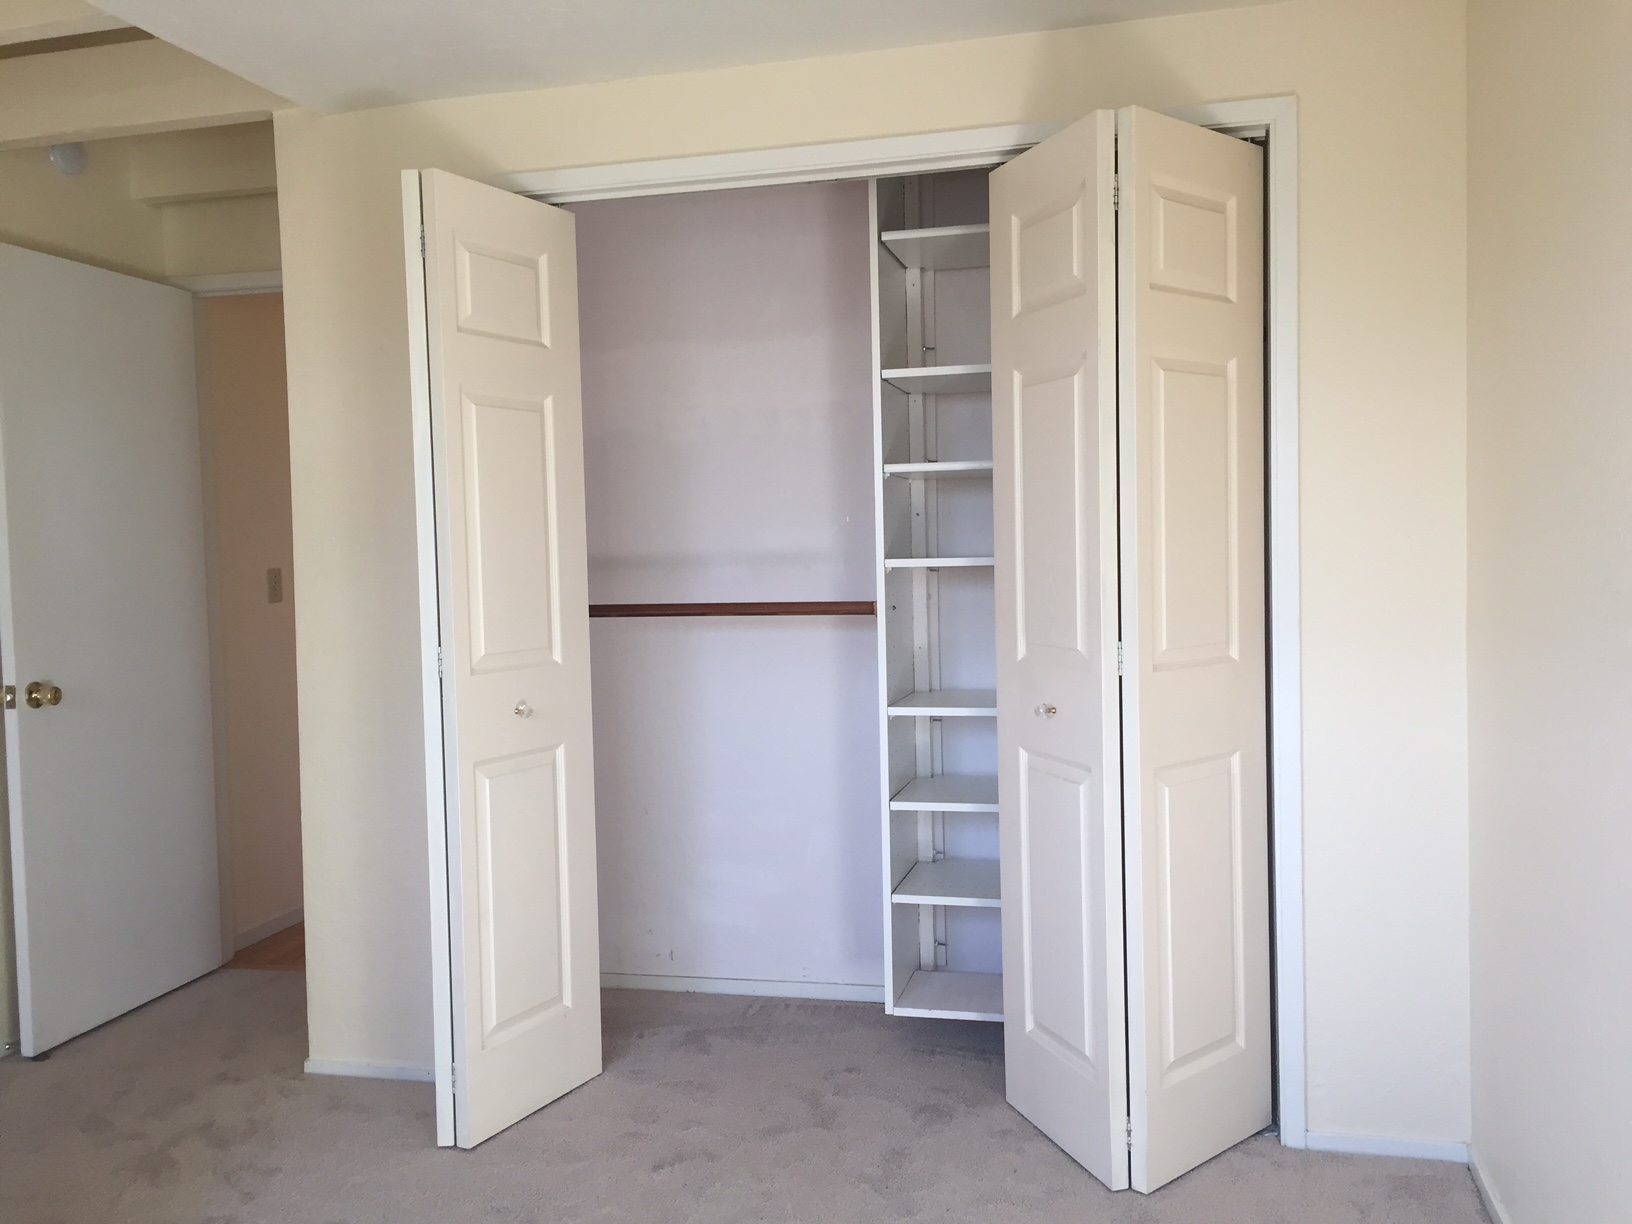 BEFORE: The master bedroom closet that was removed.